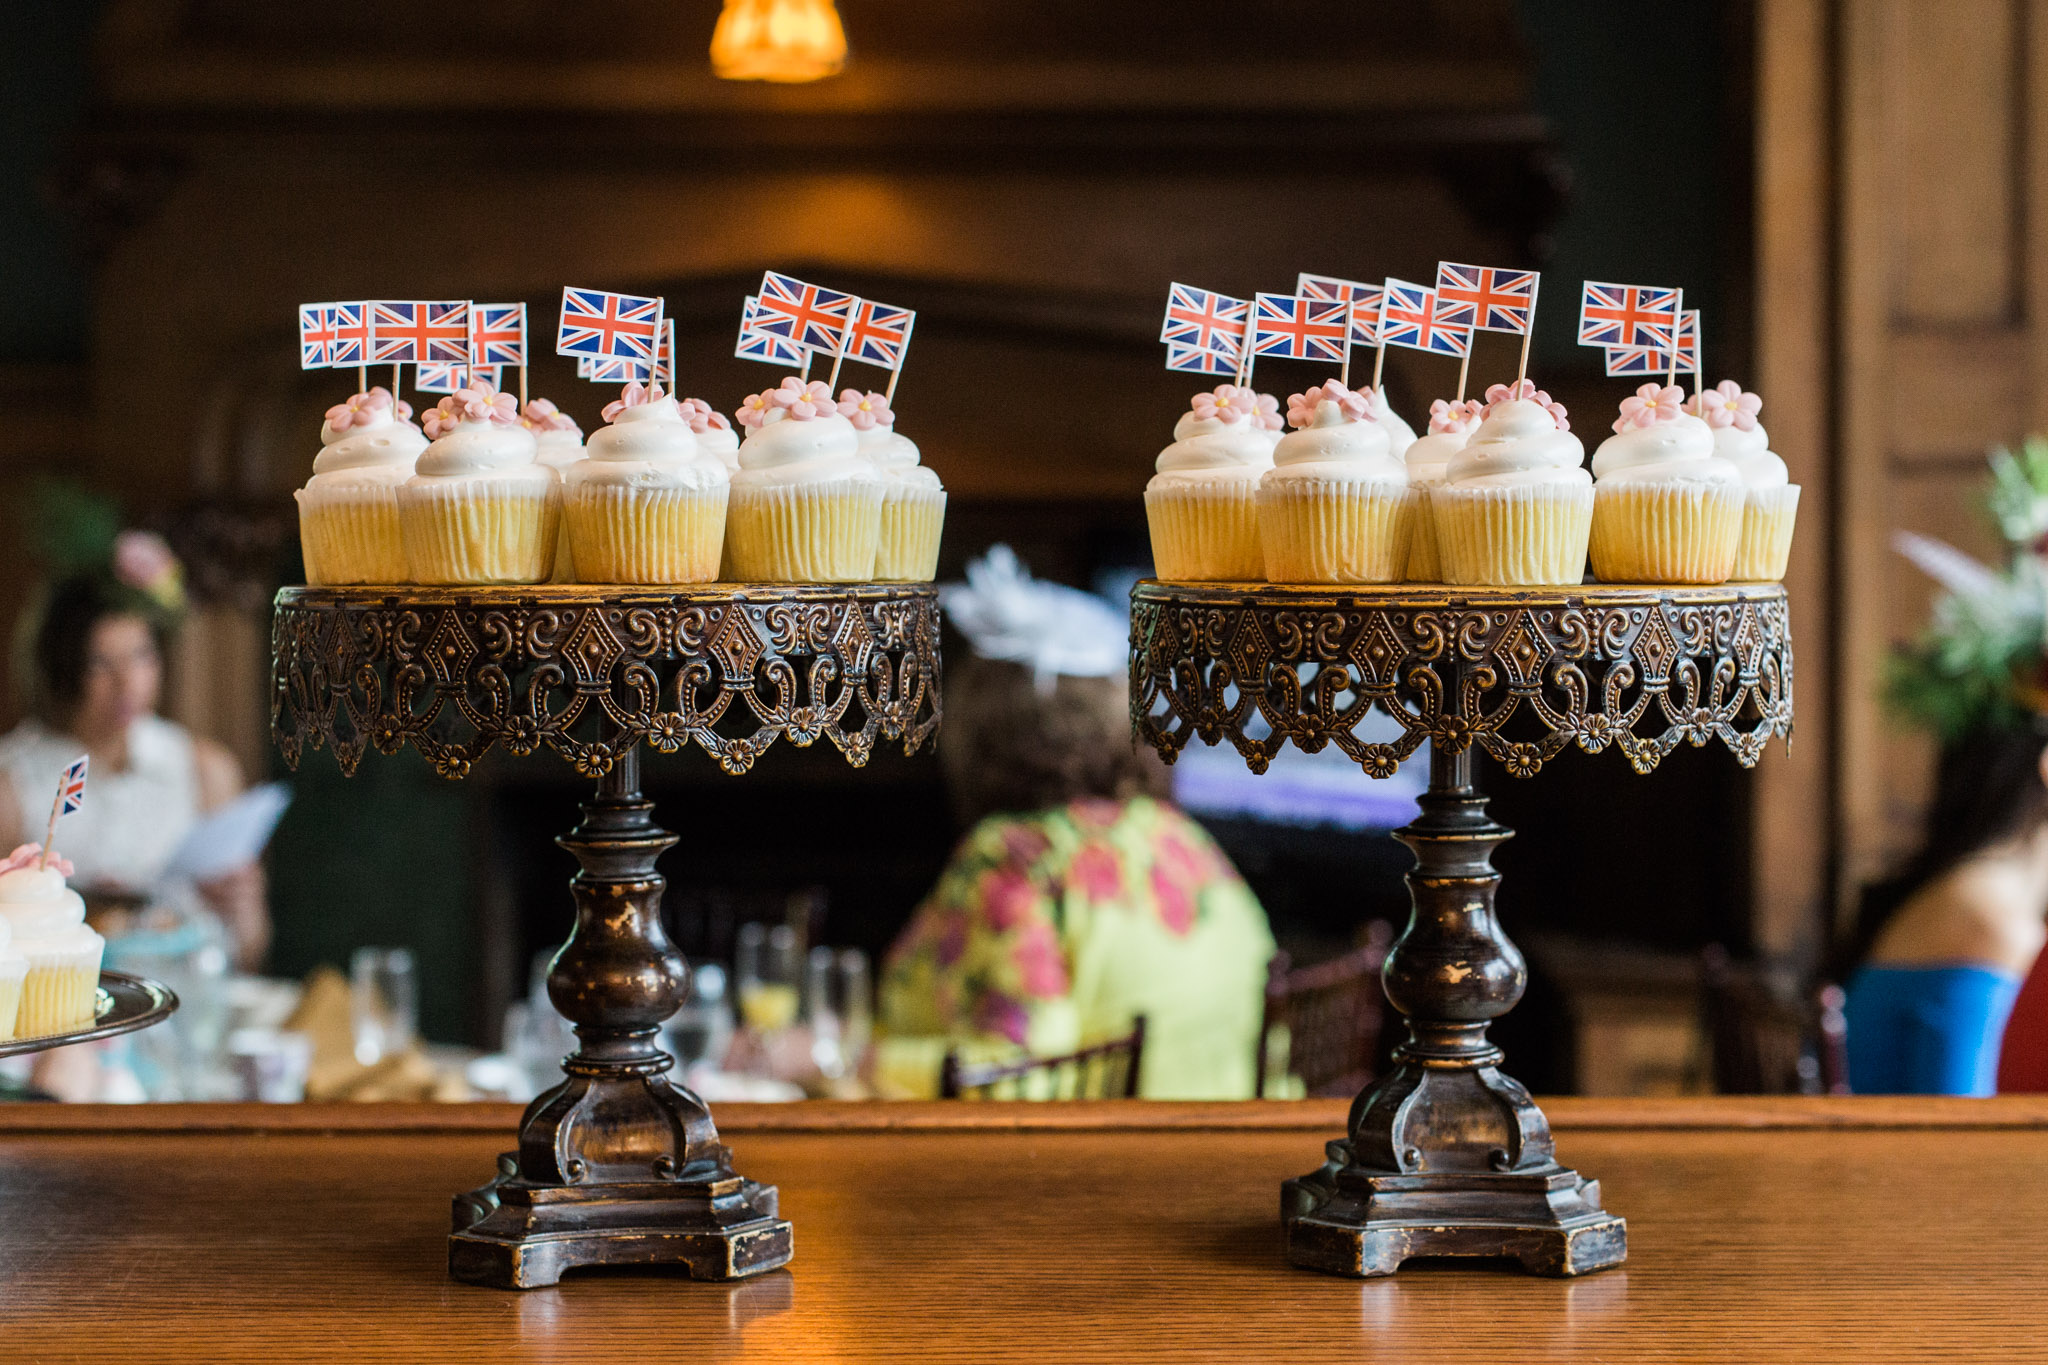 Pittsburgh Wedding Planner - Royal Wedding Watch Party - lemon elderflower cupcakes by Priory Fine Pastries